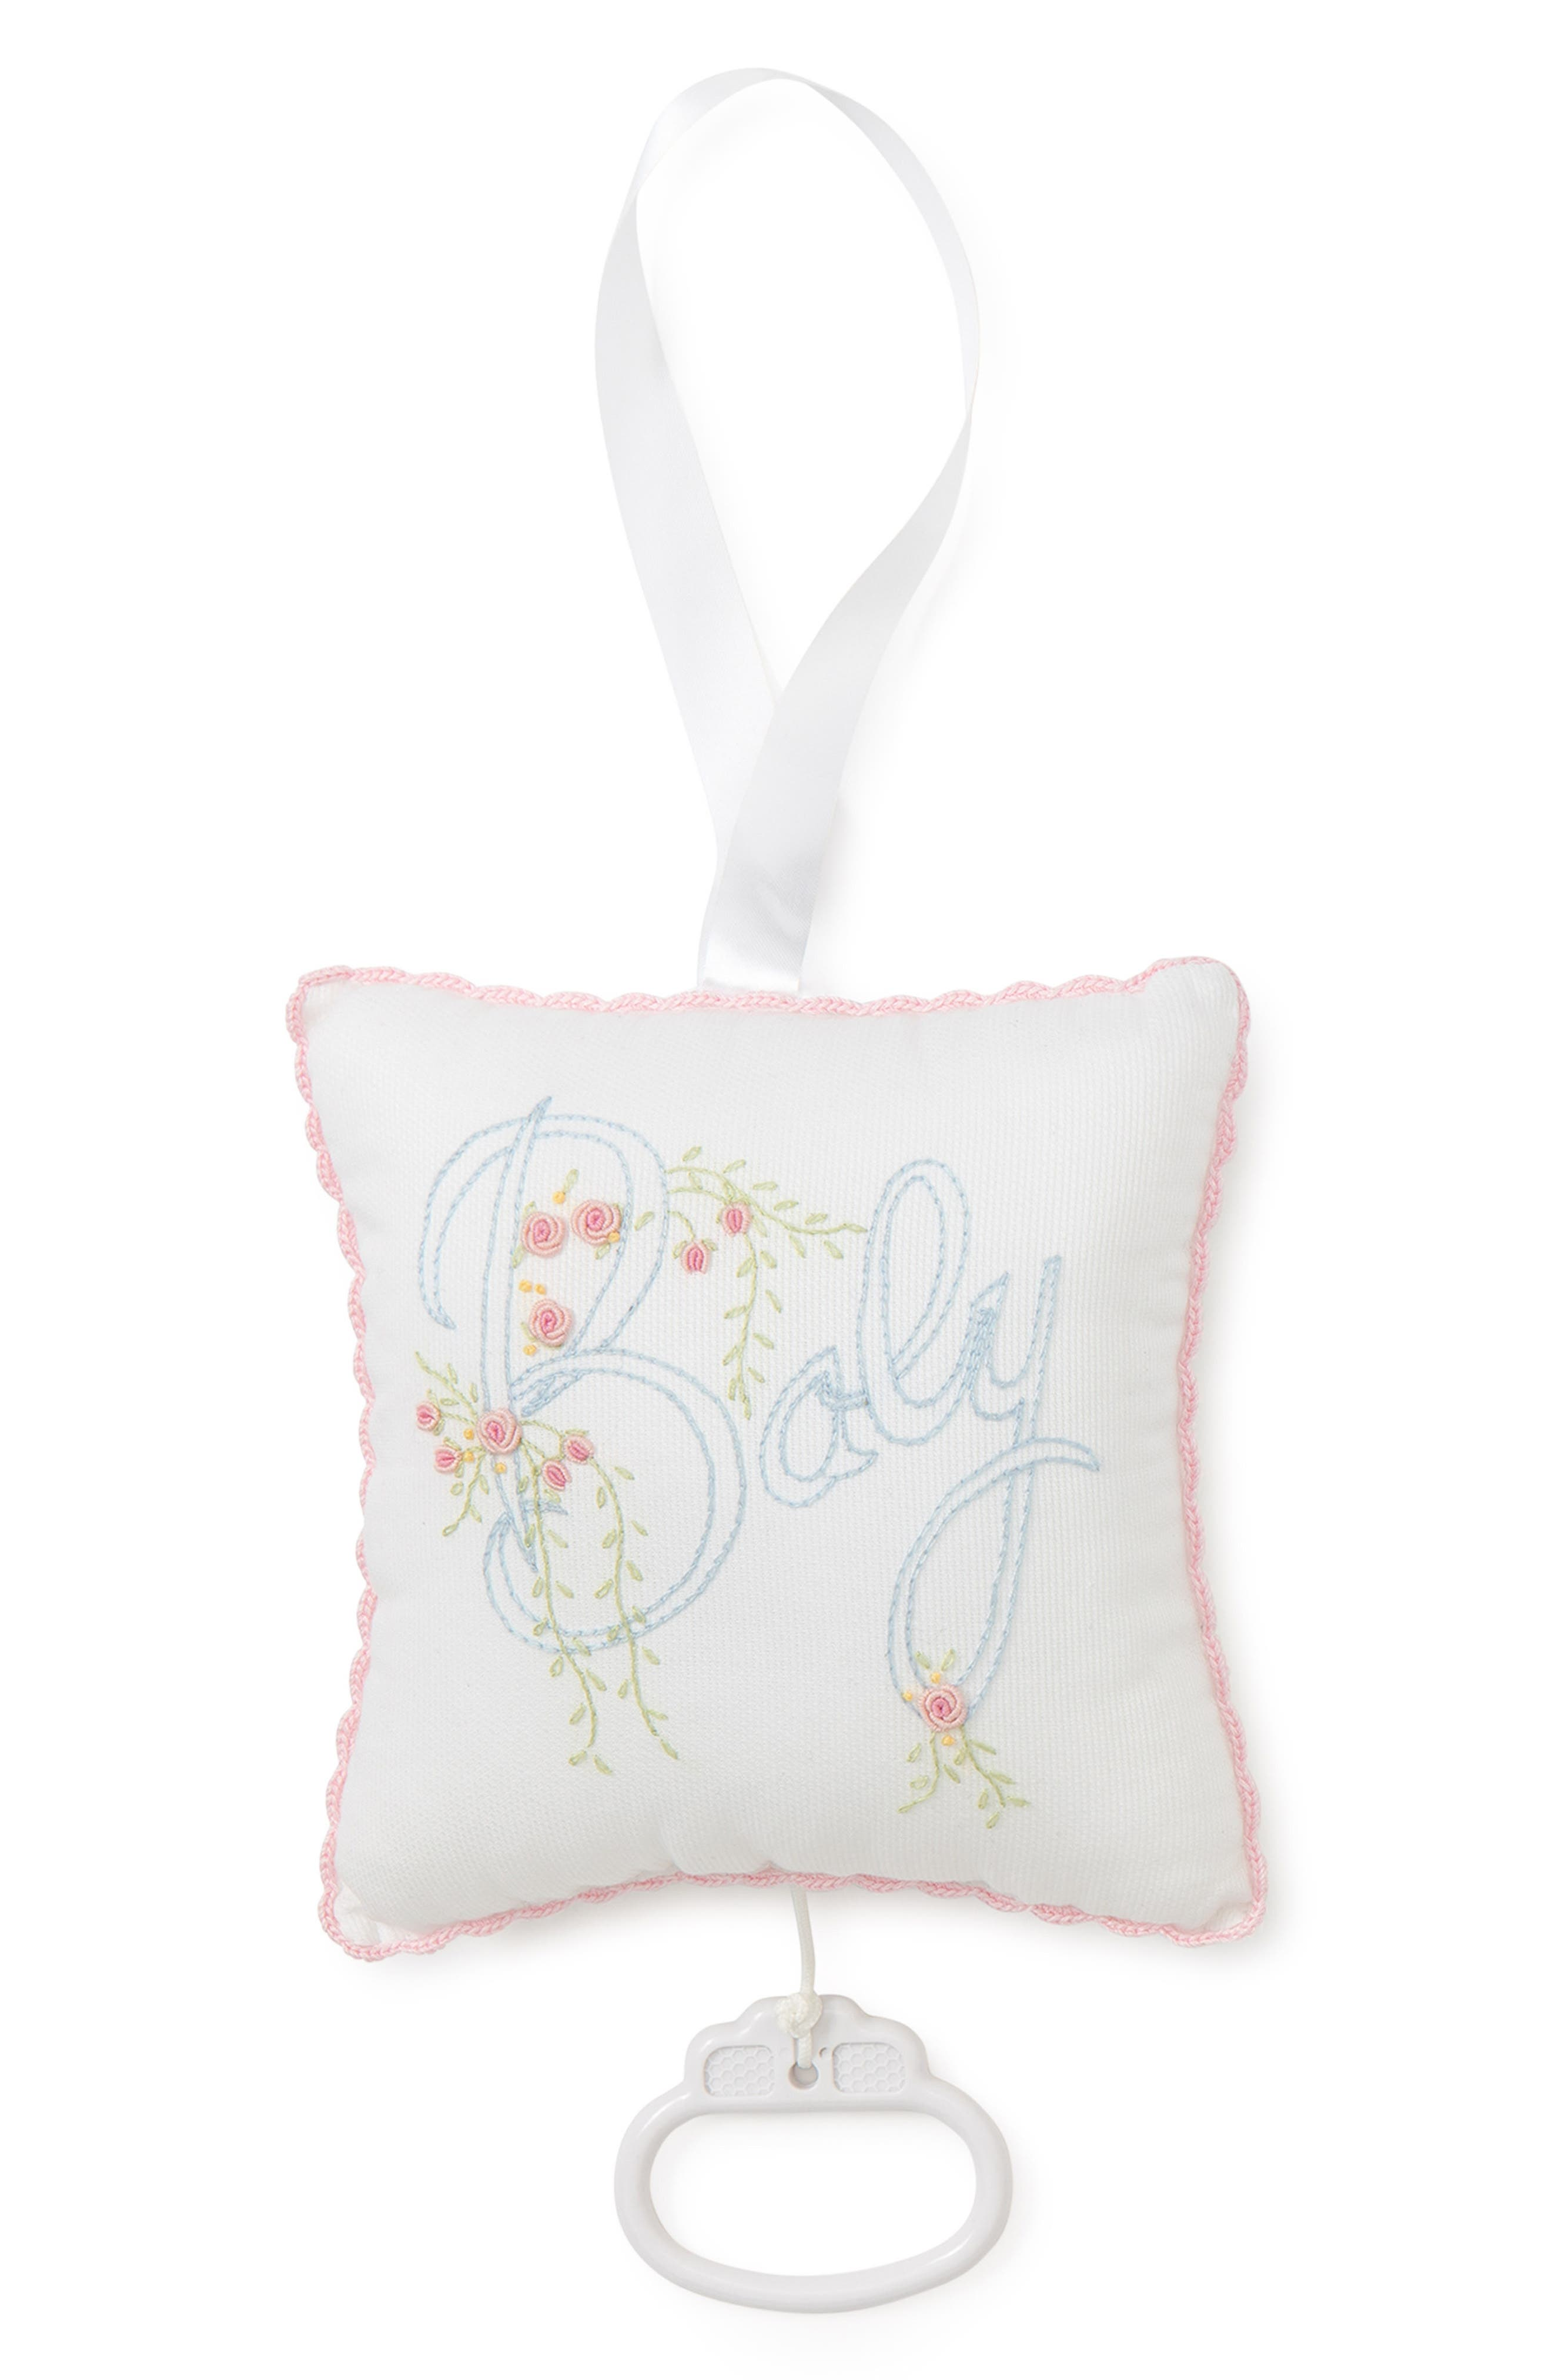 Embroidered Musical Pillow,                             Main thumbnail 1, color,                             WHITE